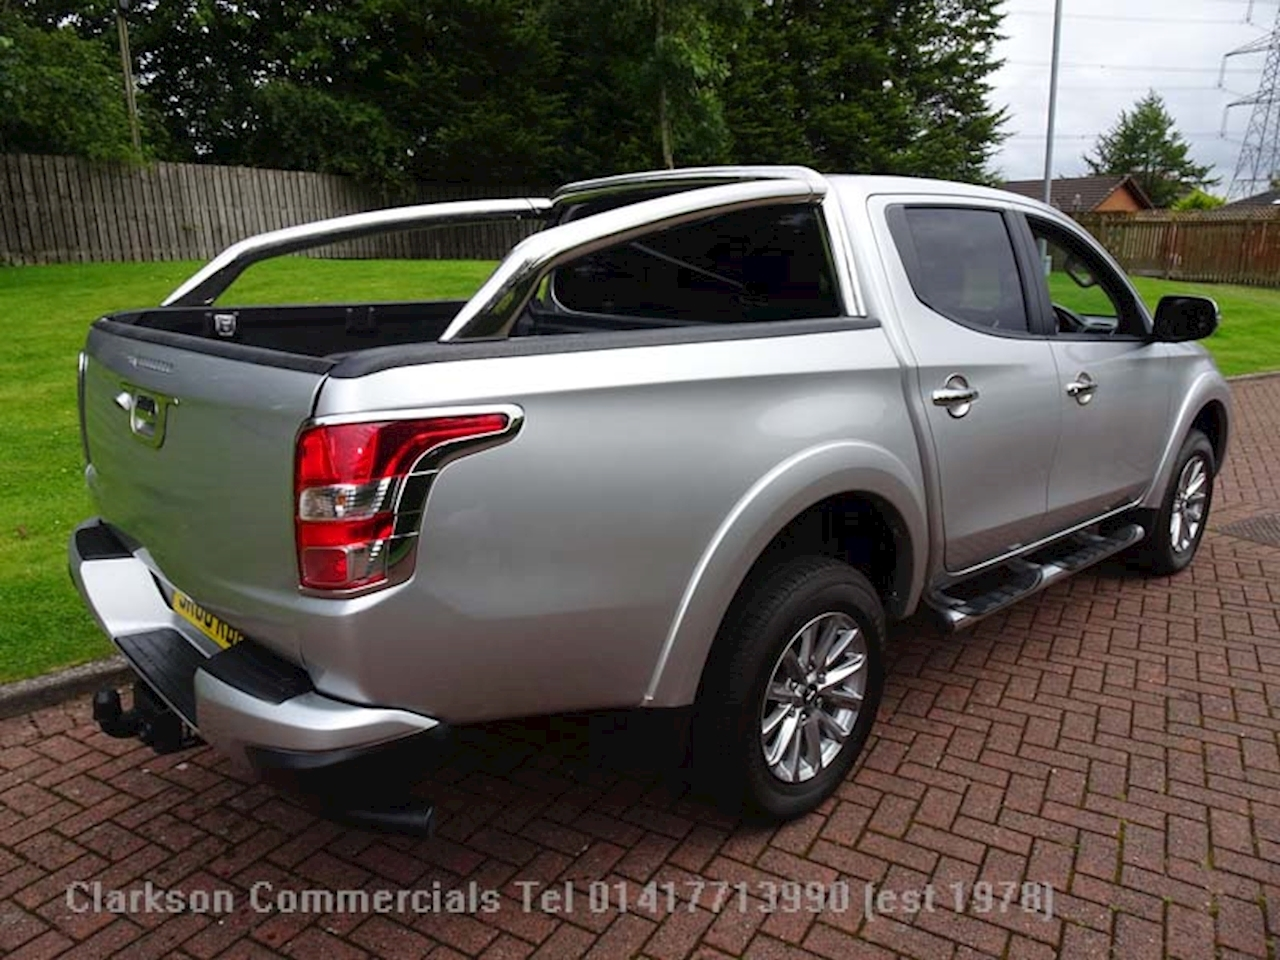 Mitsubishi L200 Di-D 4X4 Barbarian Double Cab (vat free) 2.4 Pick-Up Automatic Diesel